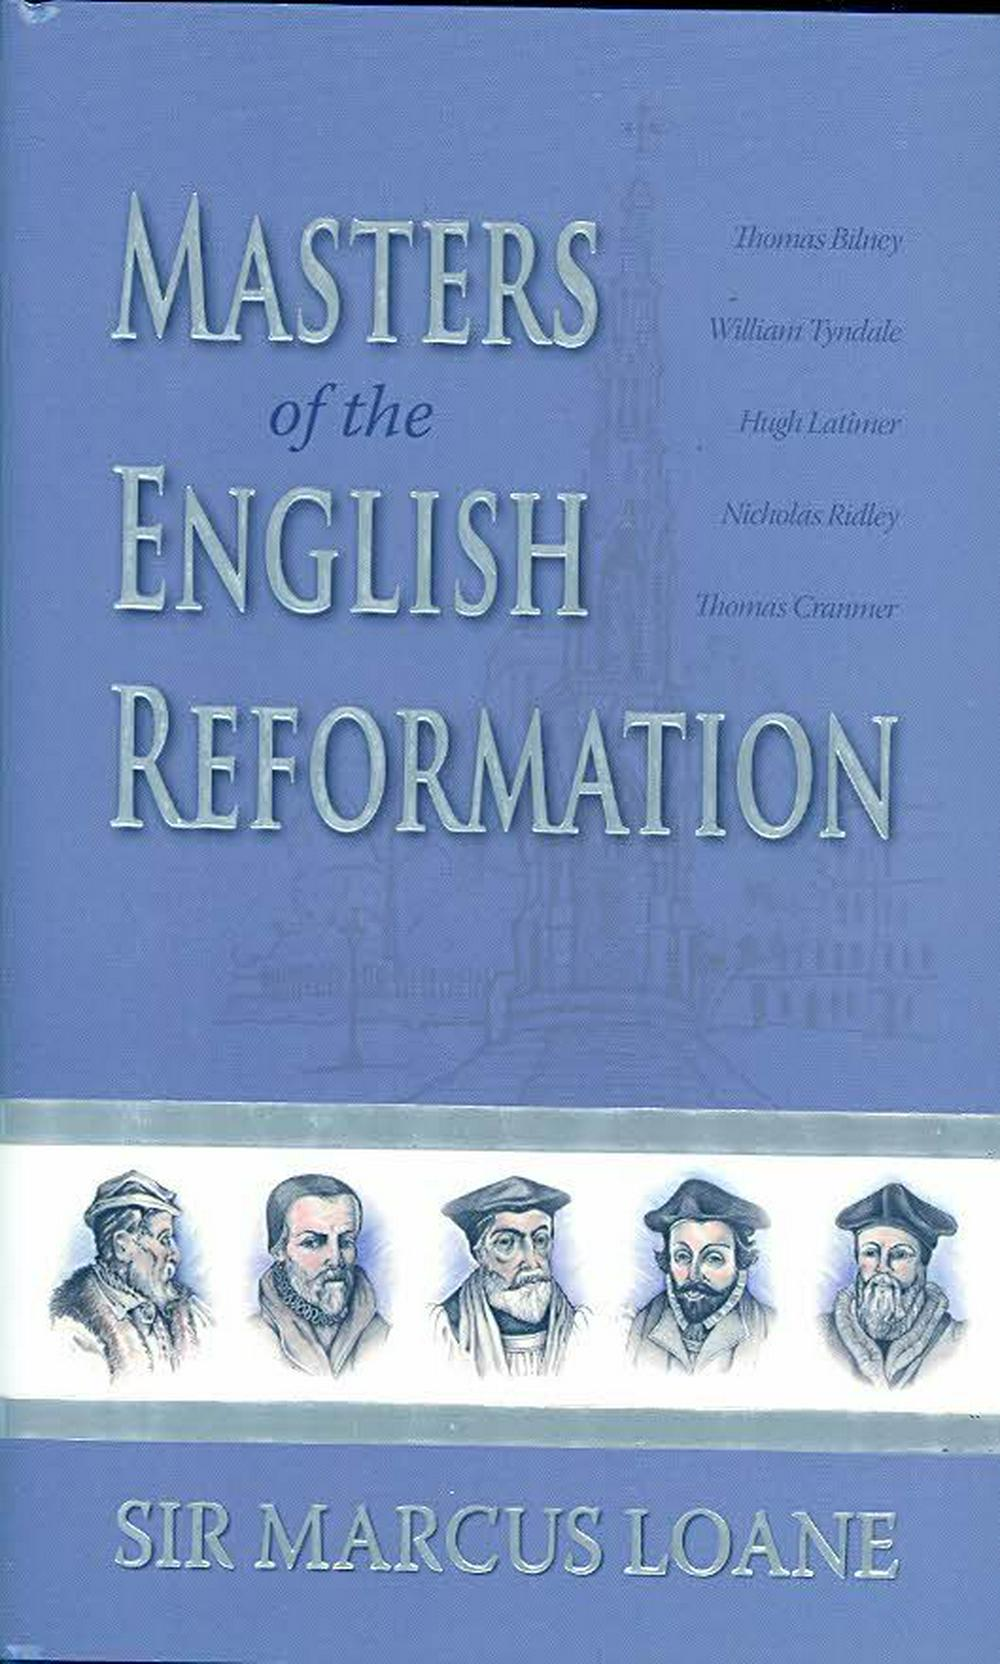 Masters of the English Reformation by Marcus Loane, ISBN: 9780851519104